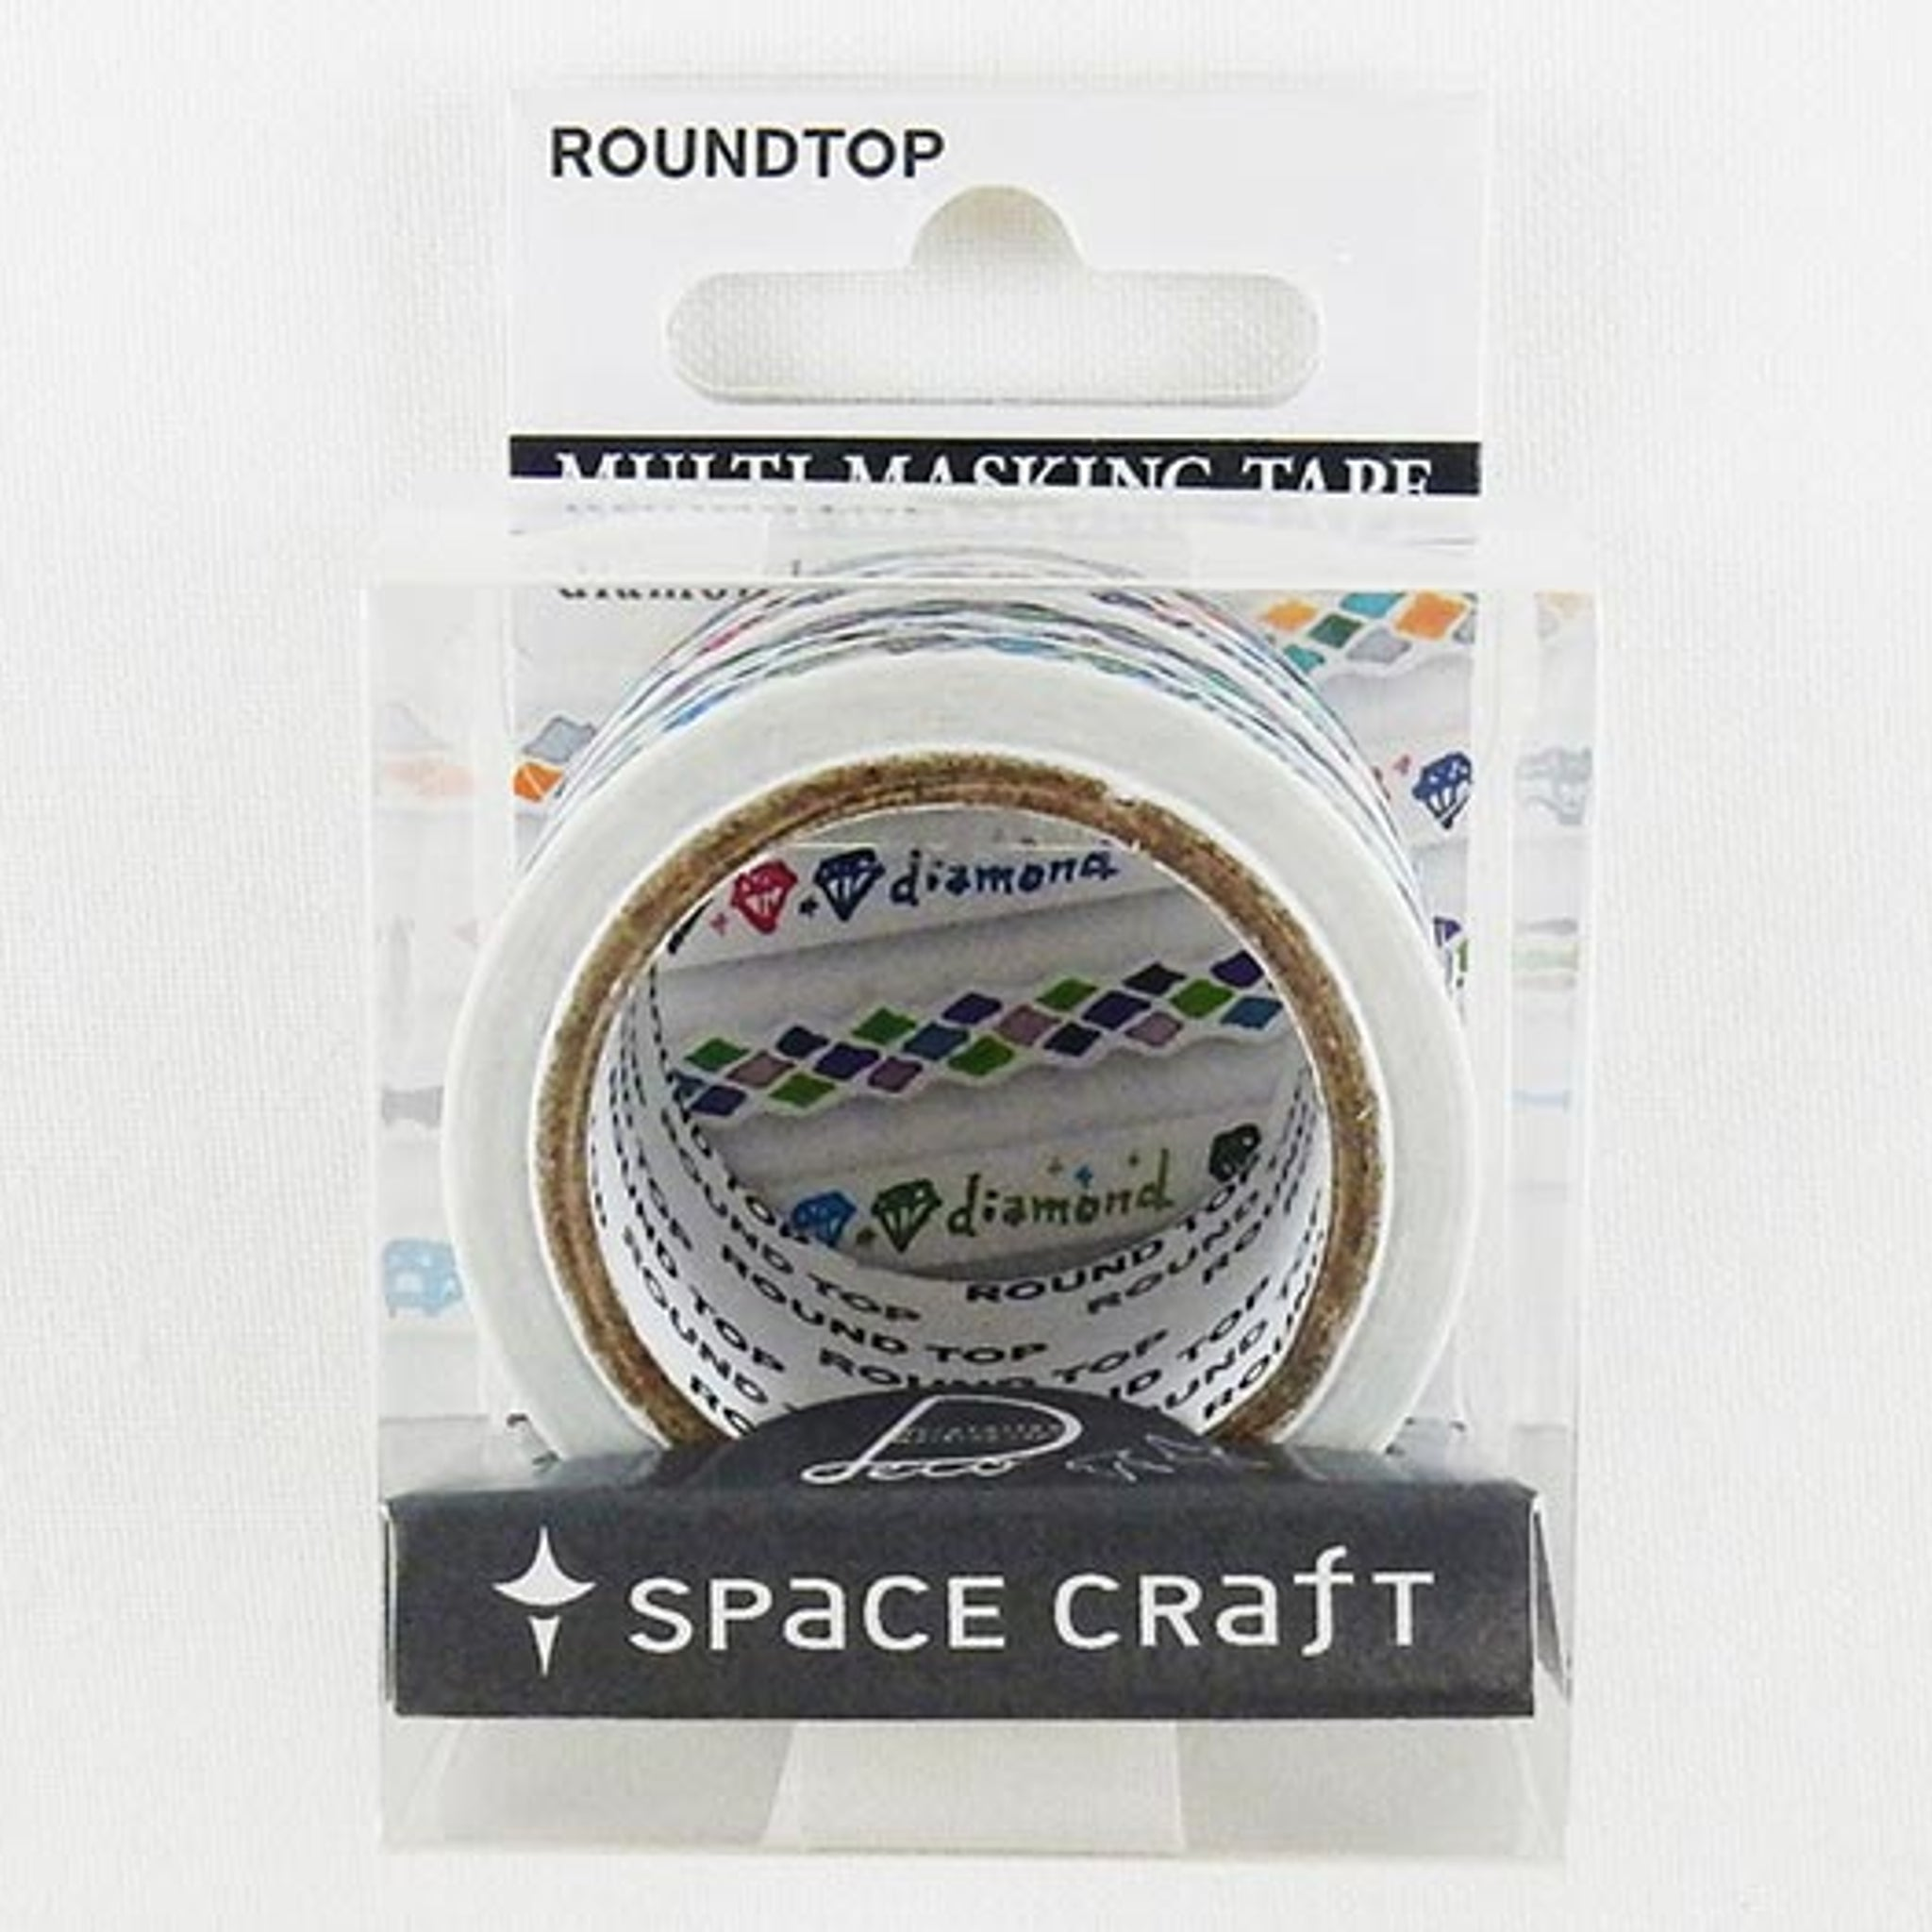 Round Top x Space Craft Washi Tape Set - of 4 Diamond